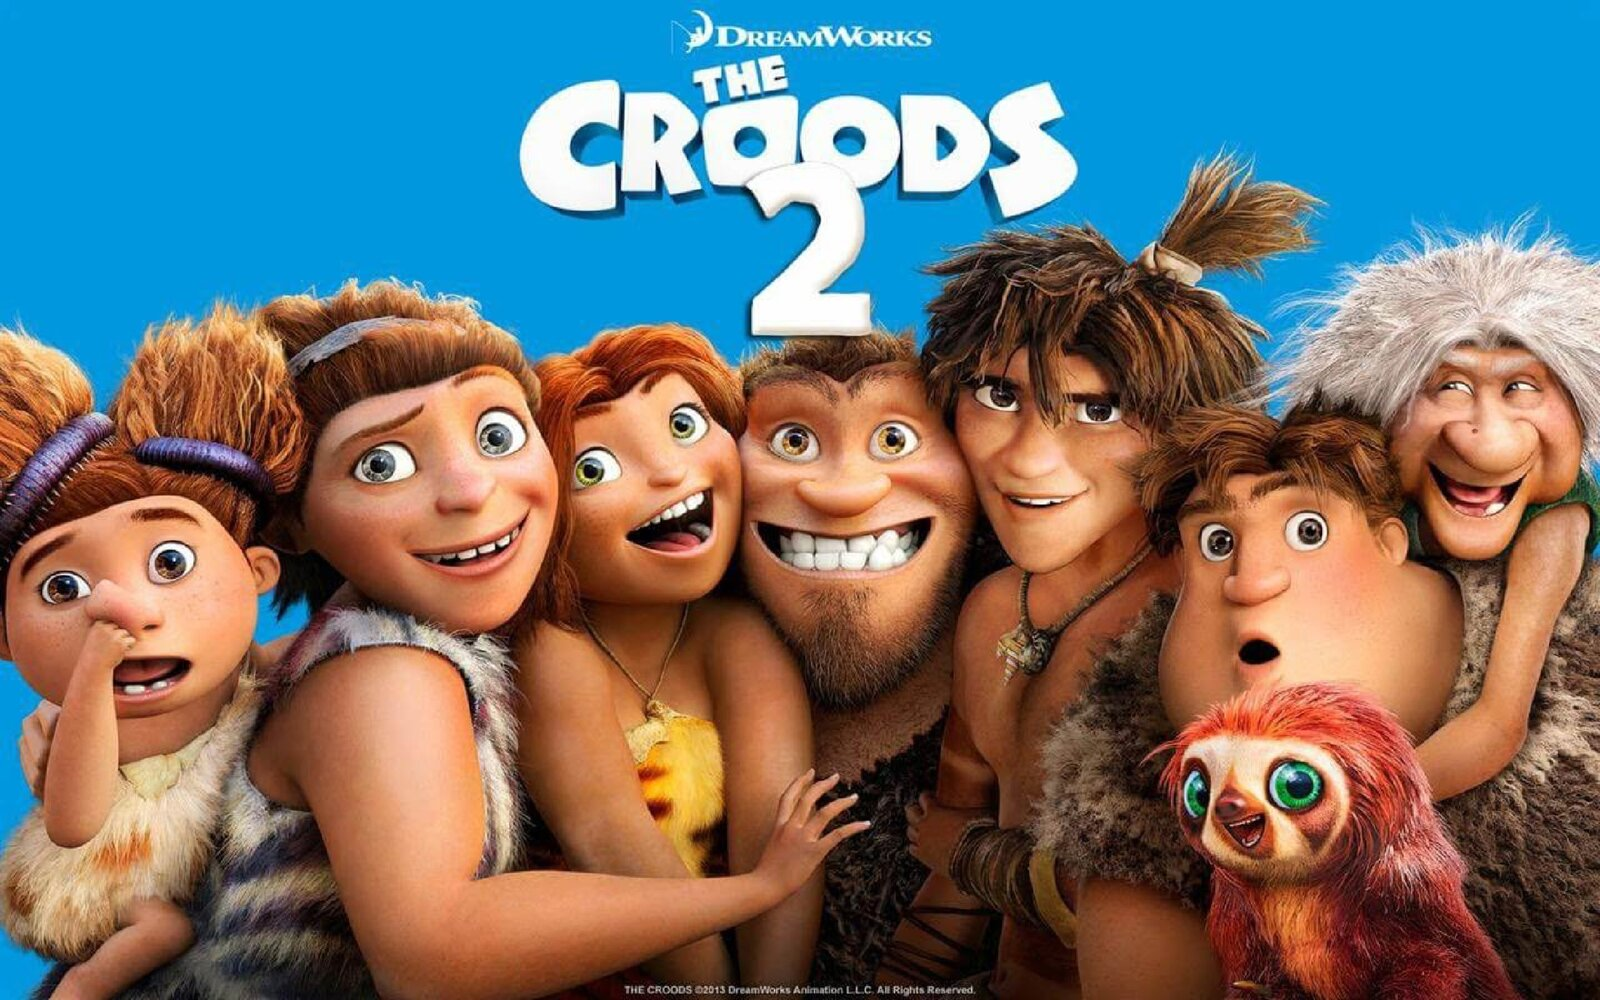 The Croods 2: Exepected Release Date And Other Details